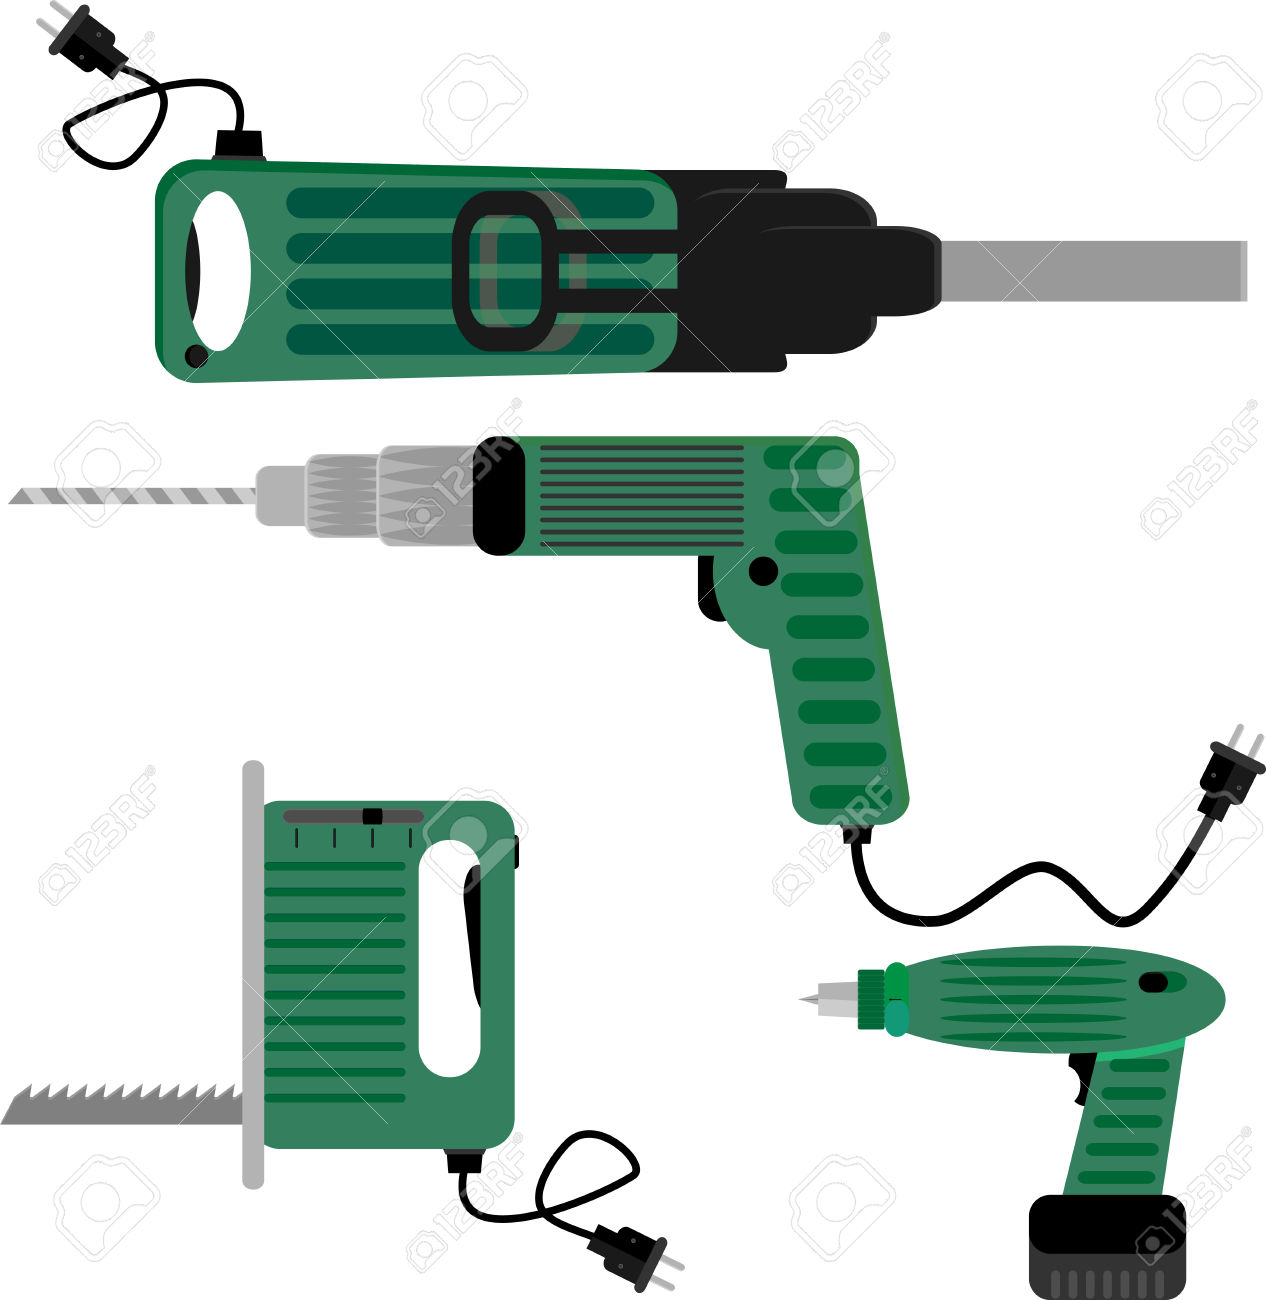 Drill Screwdriver And Hammer Jigsaw. Tool Equipment, Industry.